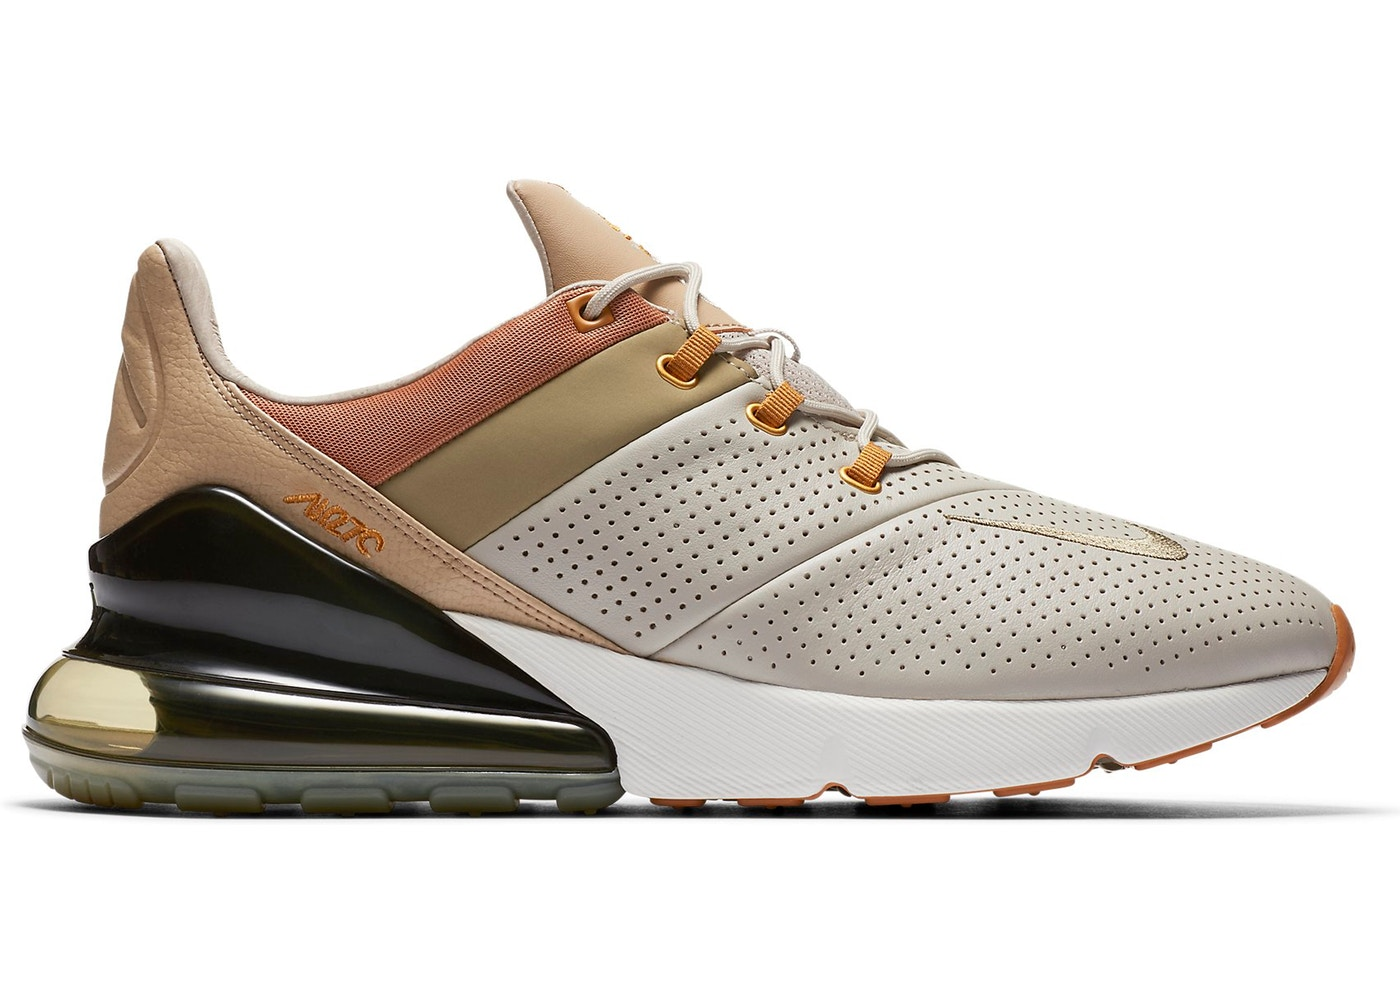 new styles 69b59 f5a10 Air Max 270 String Desert Ochre